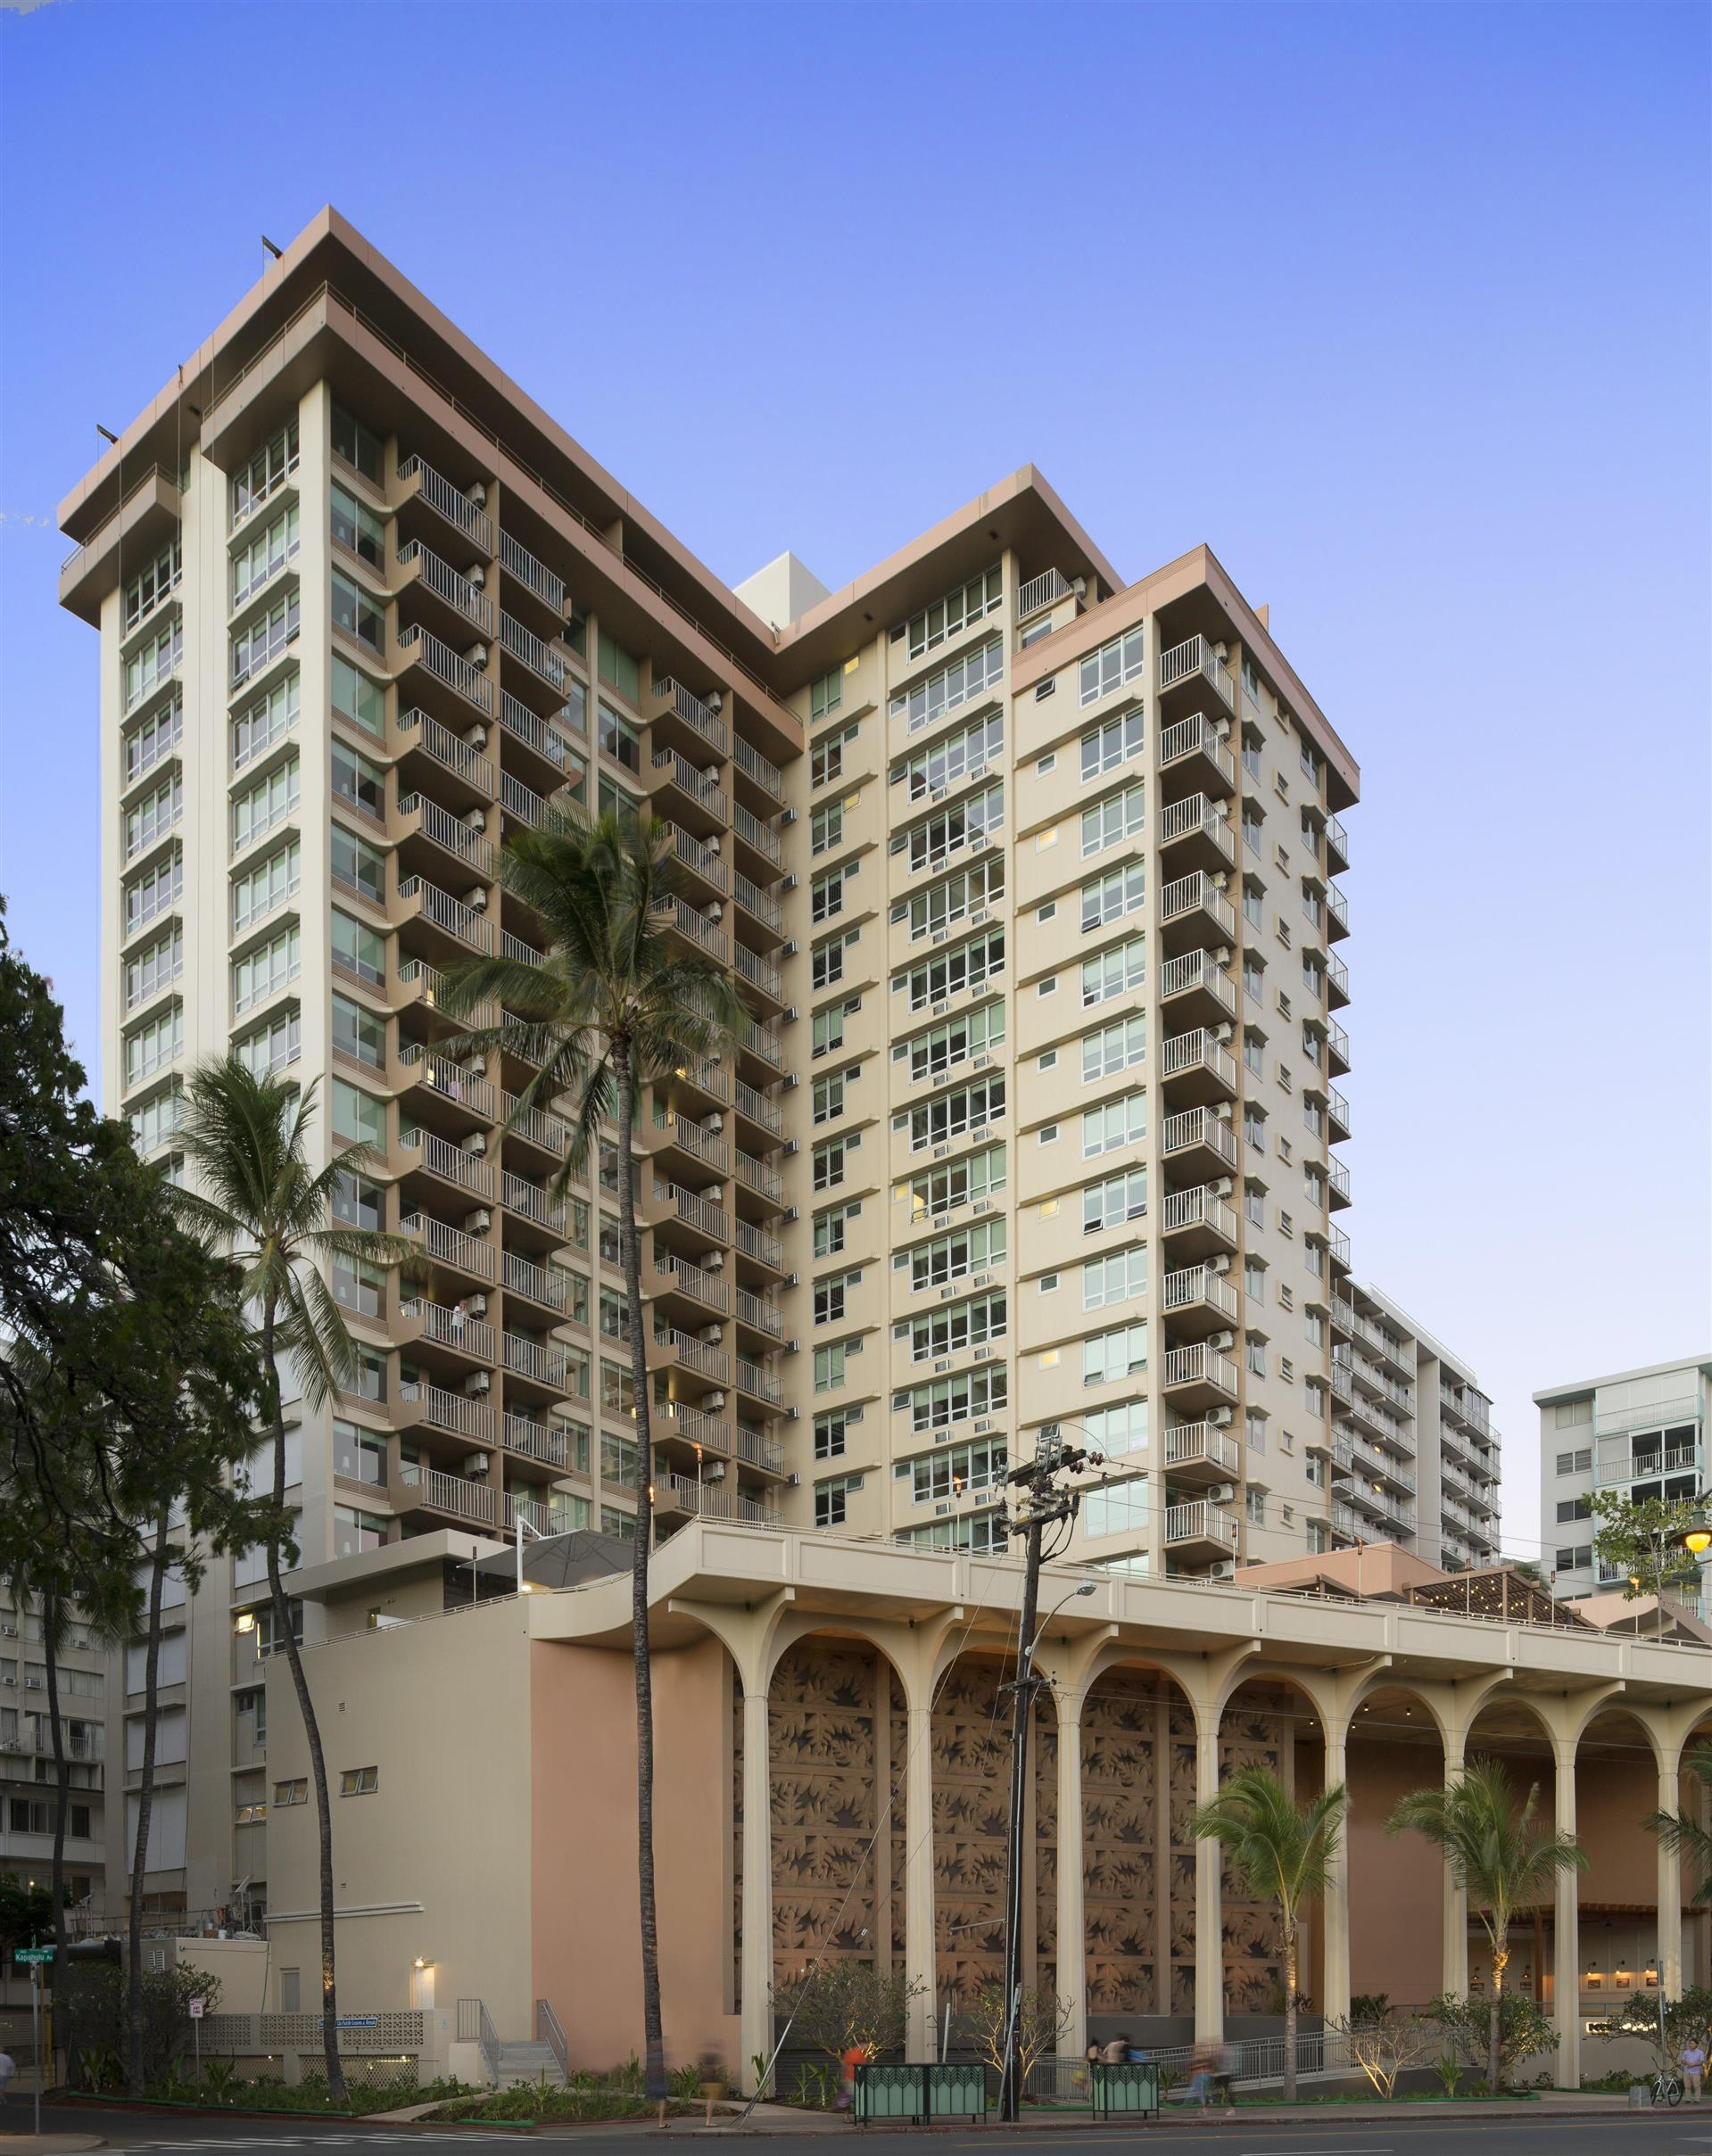 Meetings And Events At Waikiki Beachcomber By Outrigger